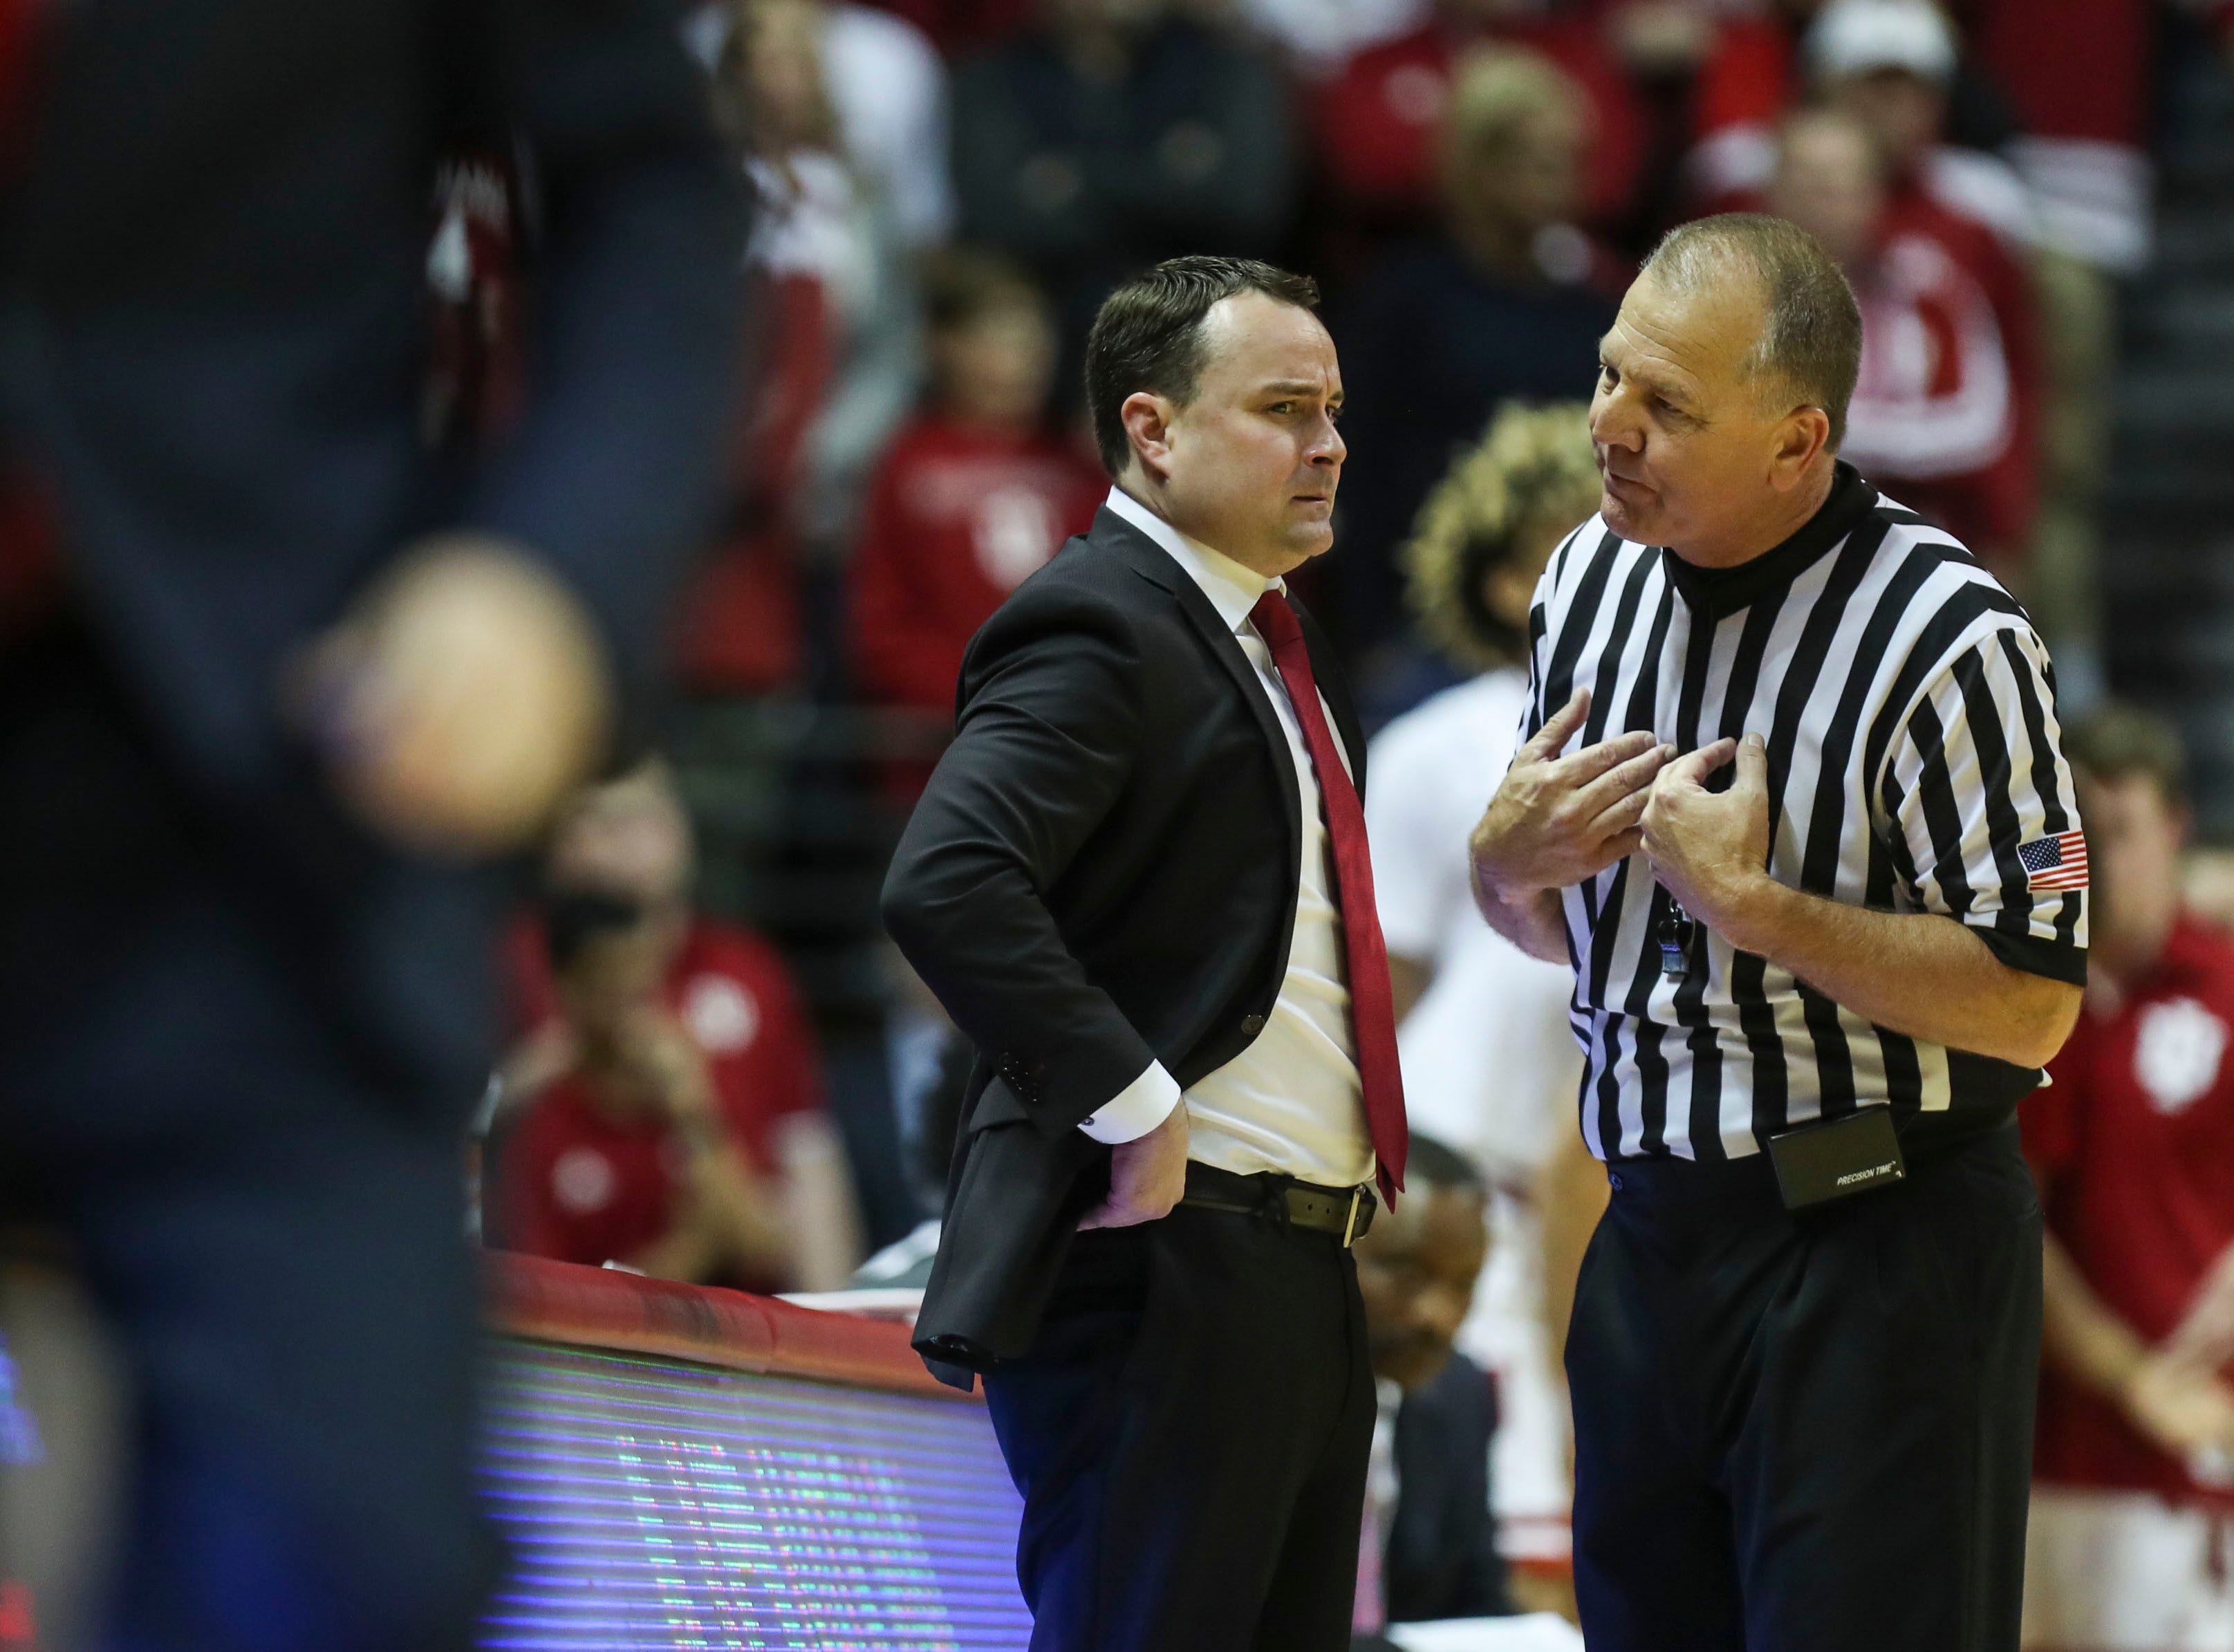 Indiana's Archie Miller wasn't happy with an official's explanation of a call during the second half Saturday, Dec. 8, 2018 at Simon Skjodt Assembly Hall in Bloomington, Ind.